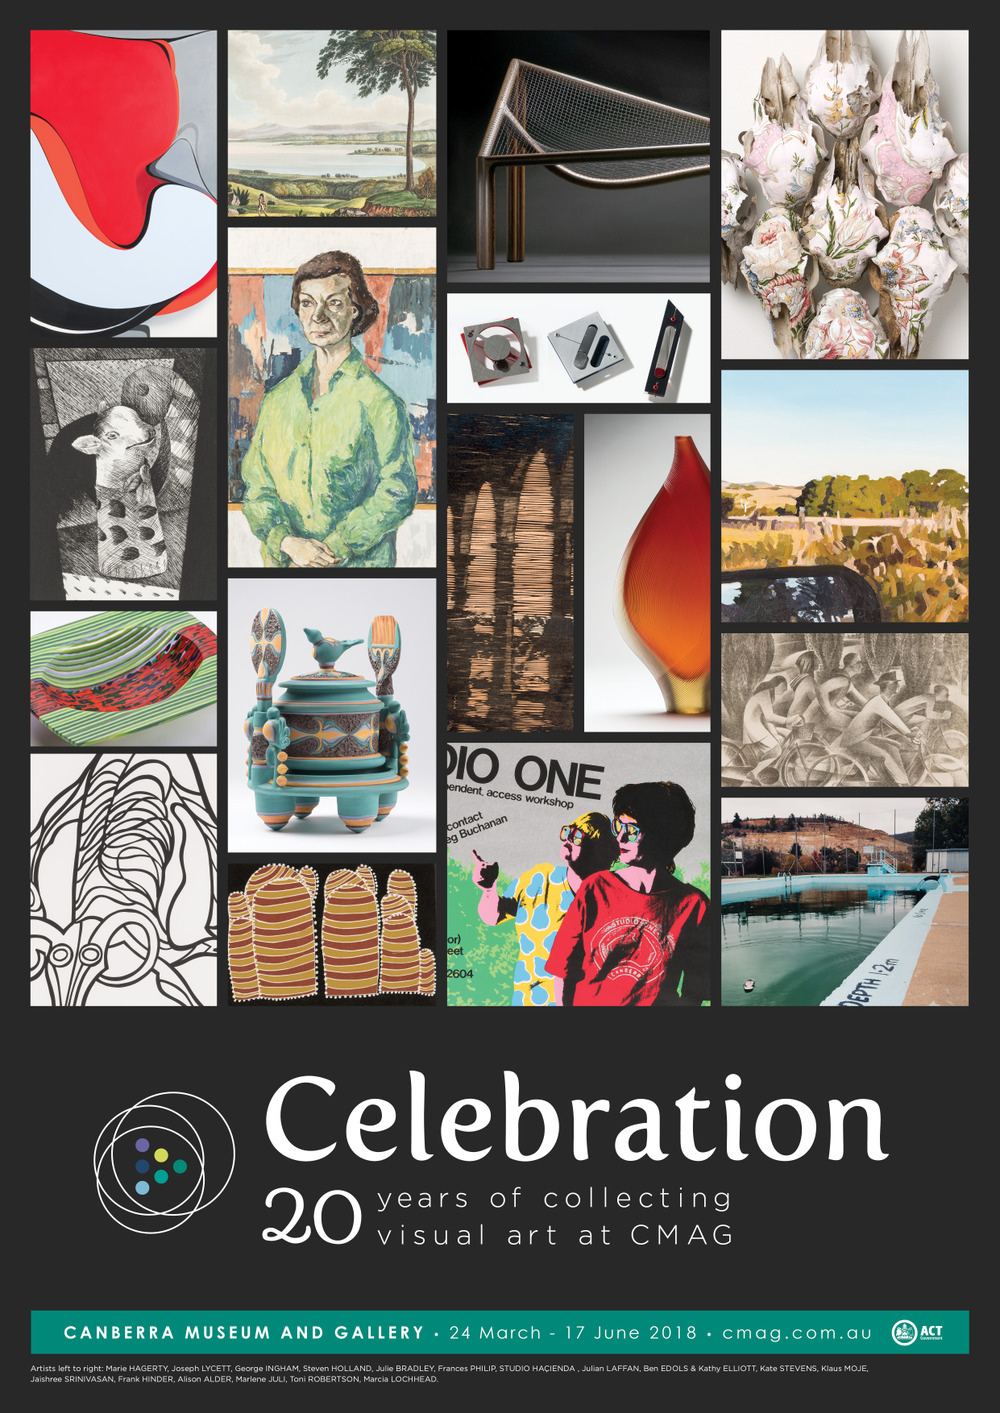 Celebration: 20 years of collecting visual art at CMAG